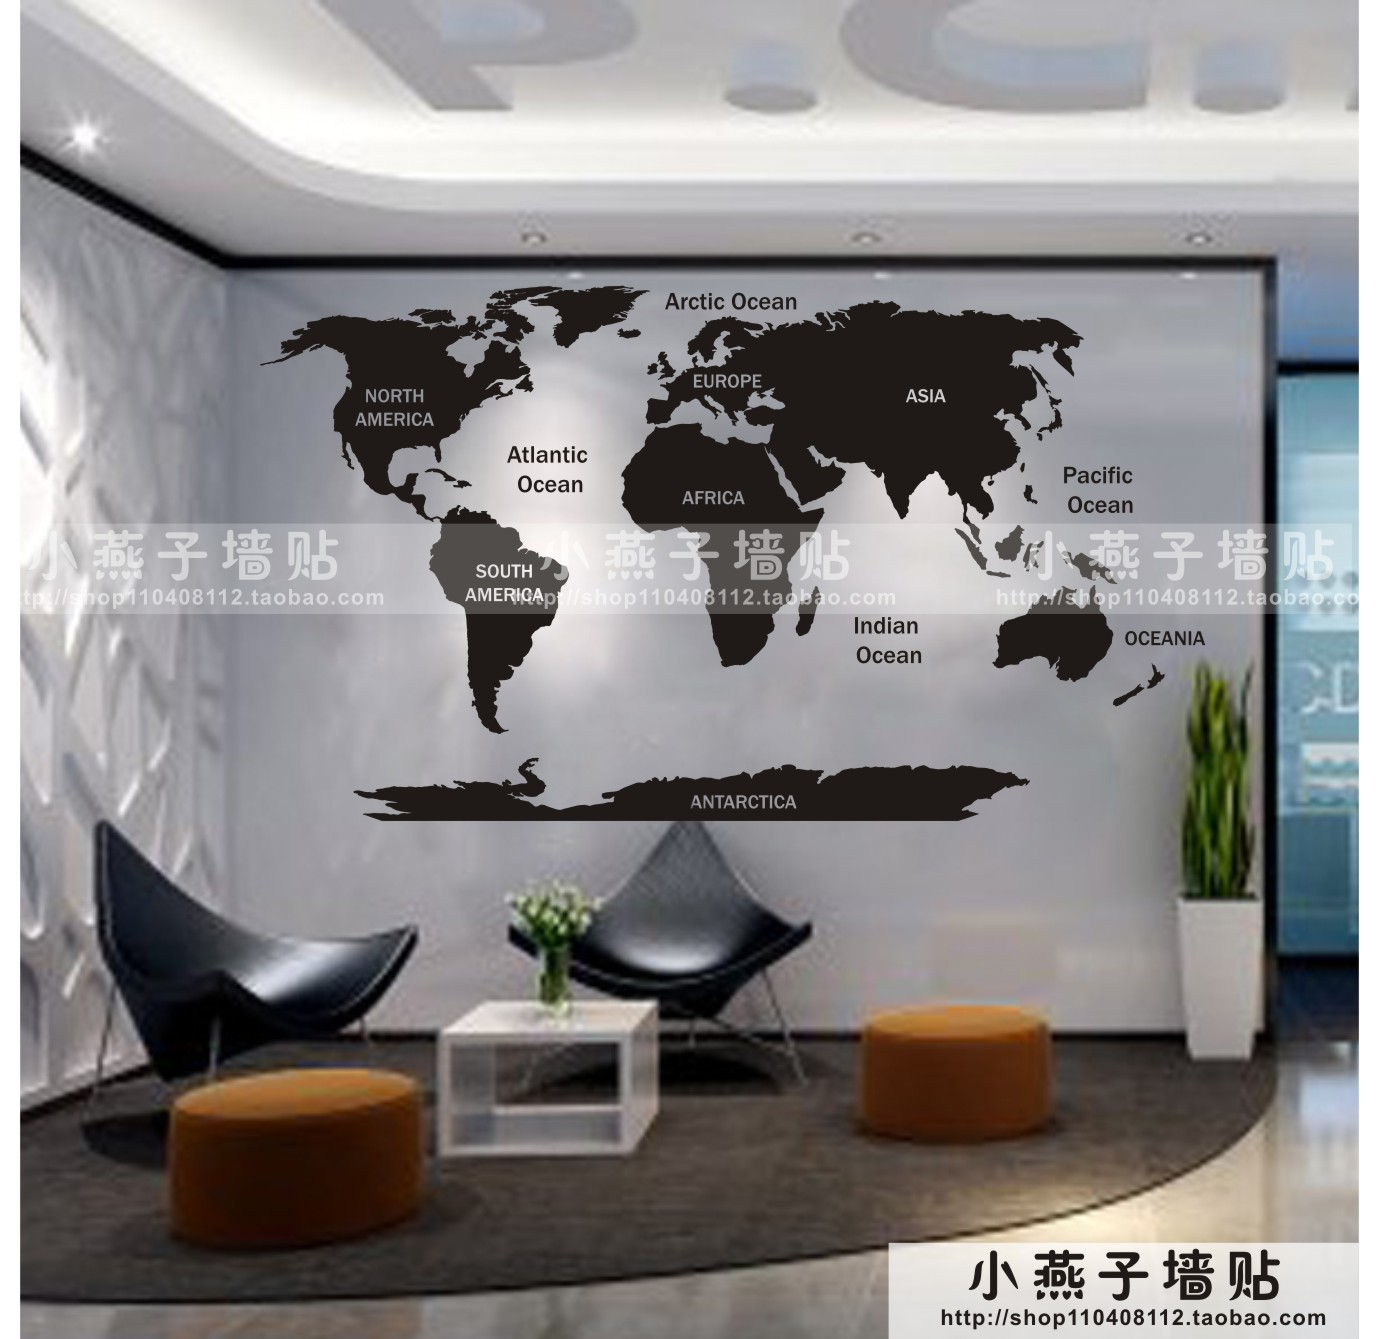 New Arrival Map Of World Vinyl Wall Decal World Map Skyline Building Art Wall <font><b>Sticker</b></font> <font><b>Office</b></font> Living Room Bedroom Home Decoration